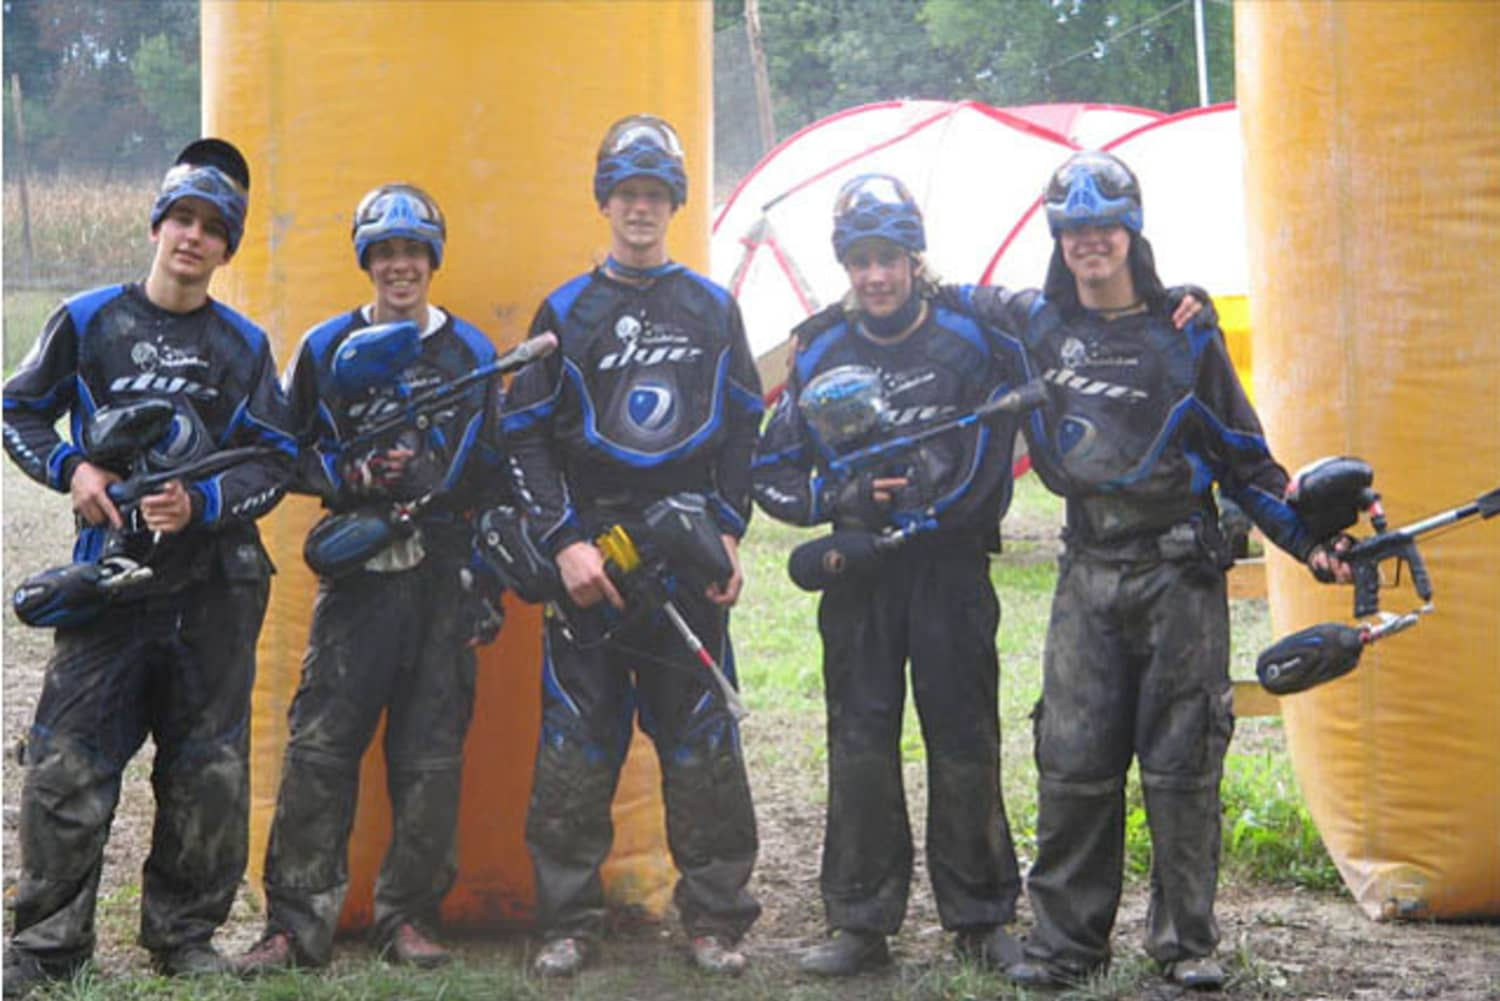 Fiz Paintball - Passy